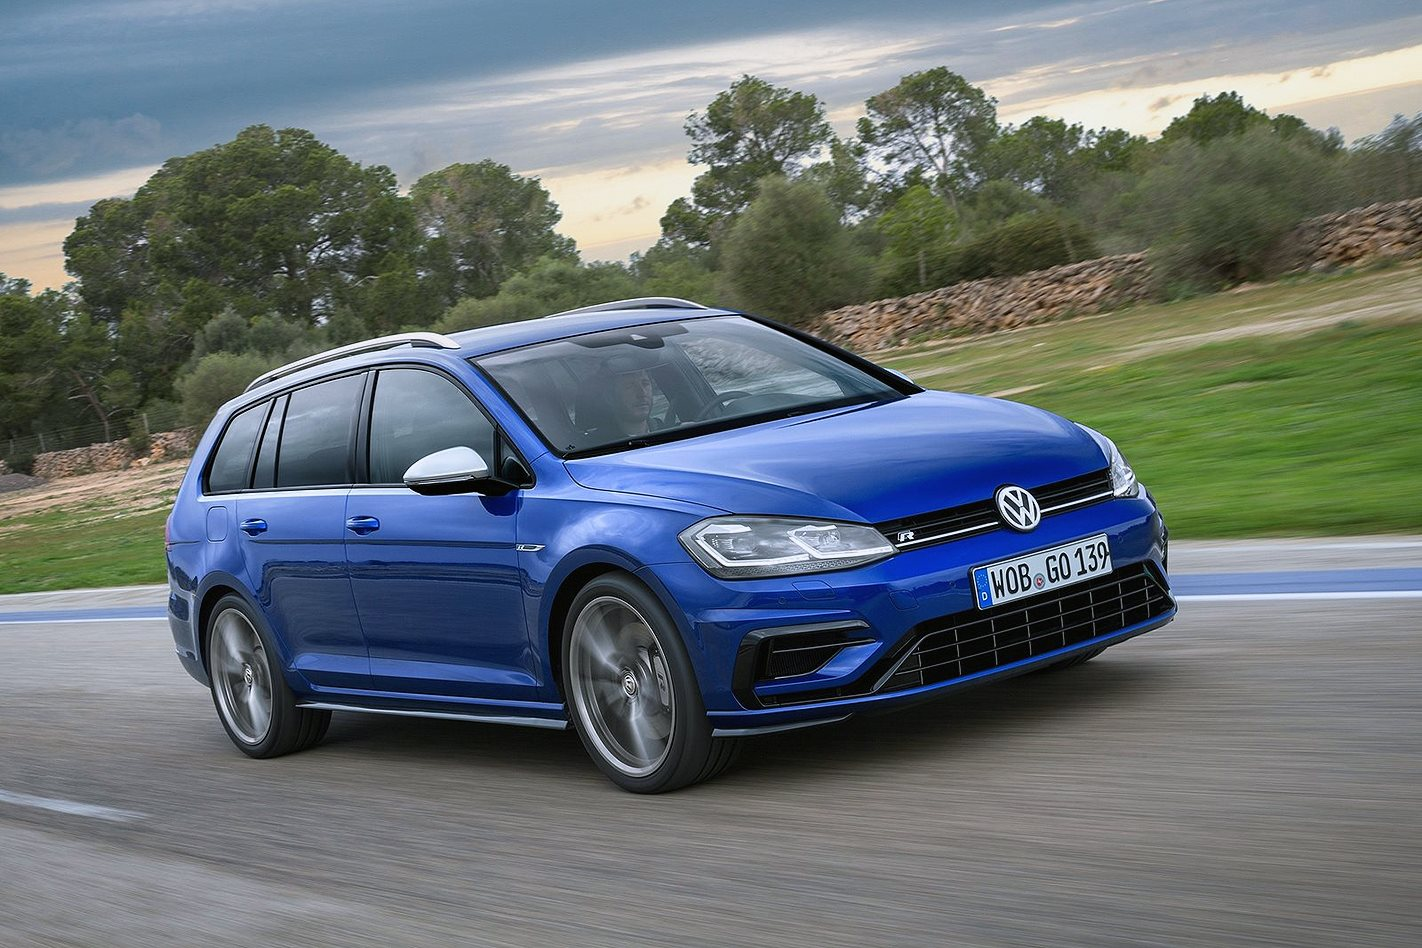 2018 volkswagen golf r 7 5 hatch and wagon prices revealed. Black Bedroom Furniture Sets. Home Design Ideas